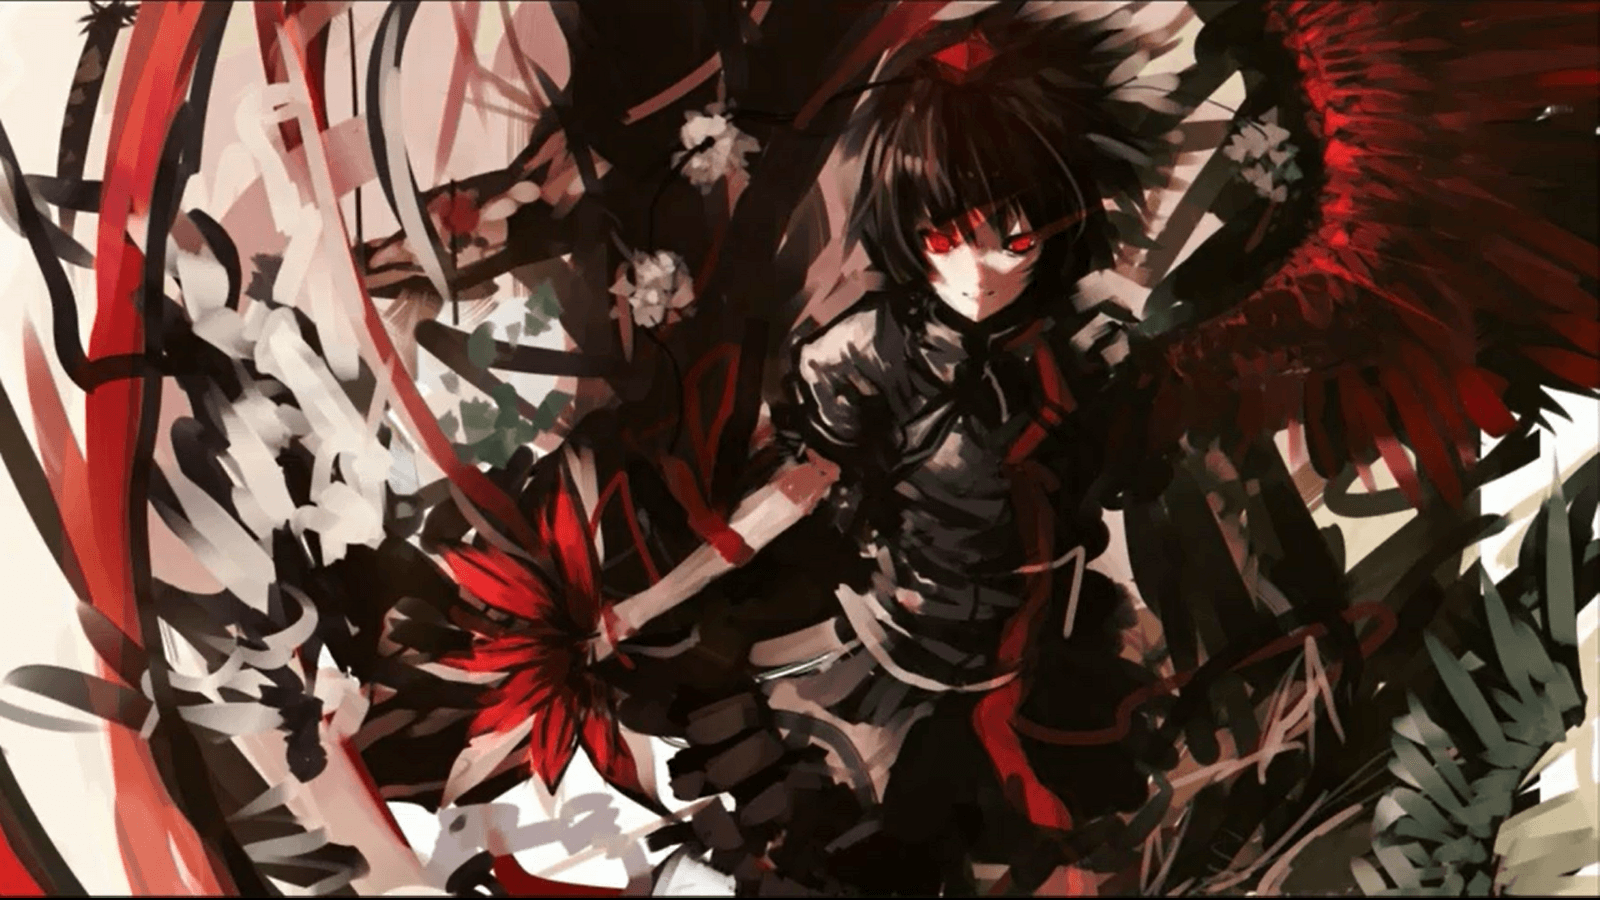 Evil Anime Wallpapers - Top Free Evil Anime Backgrounds